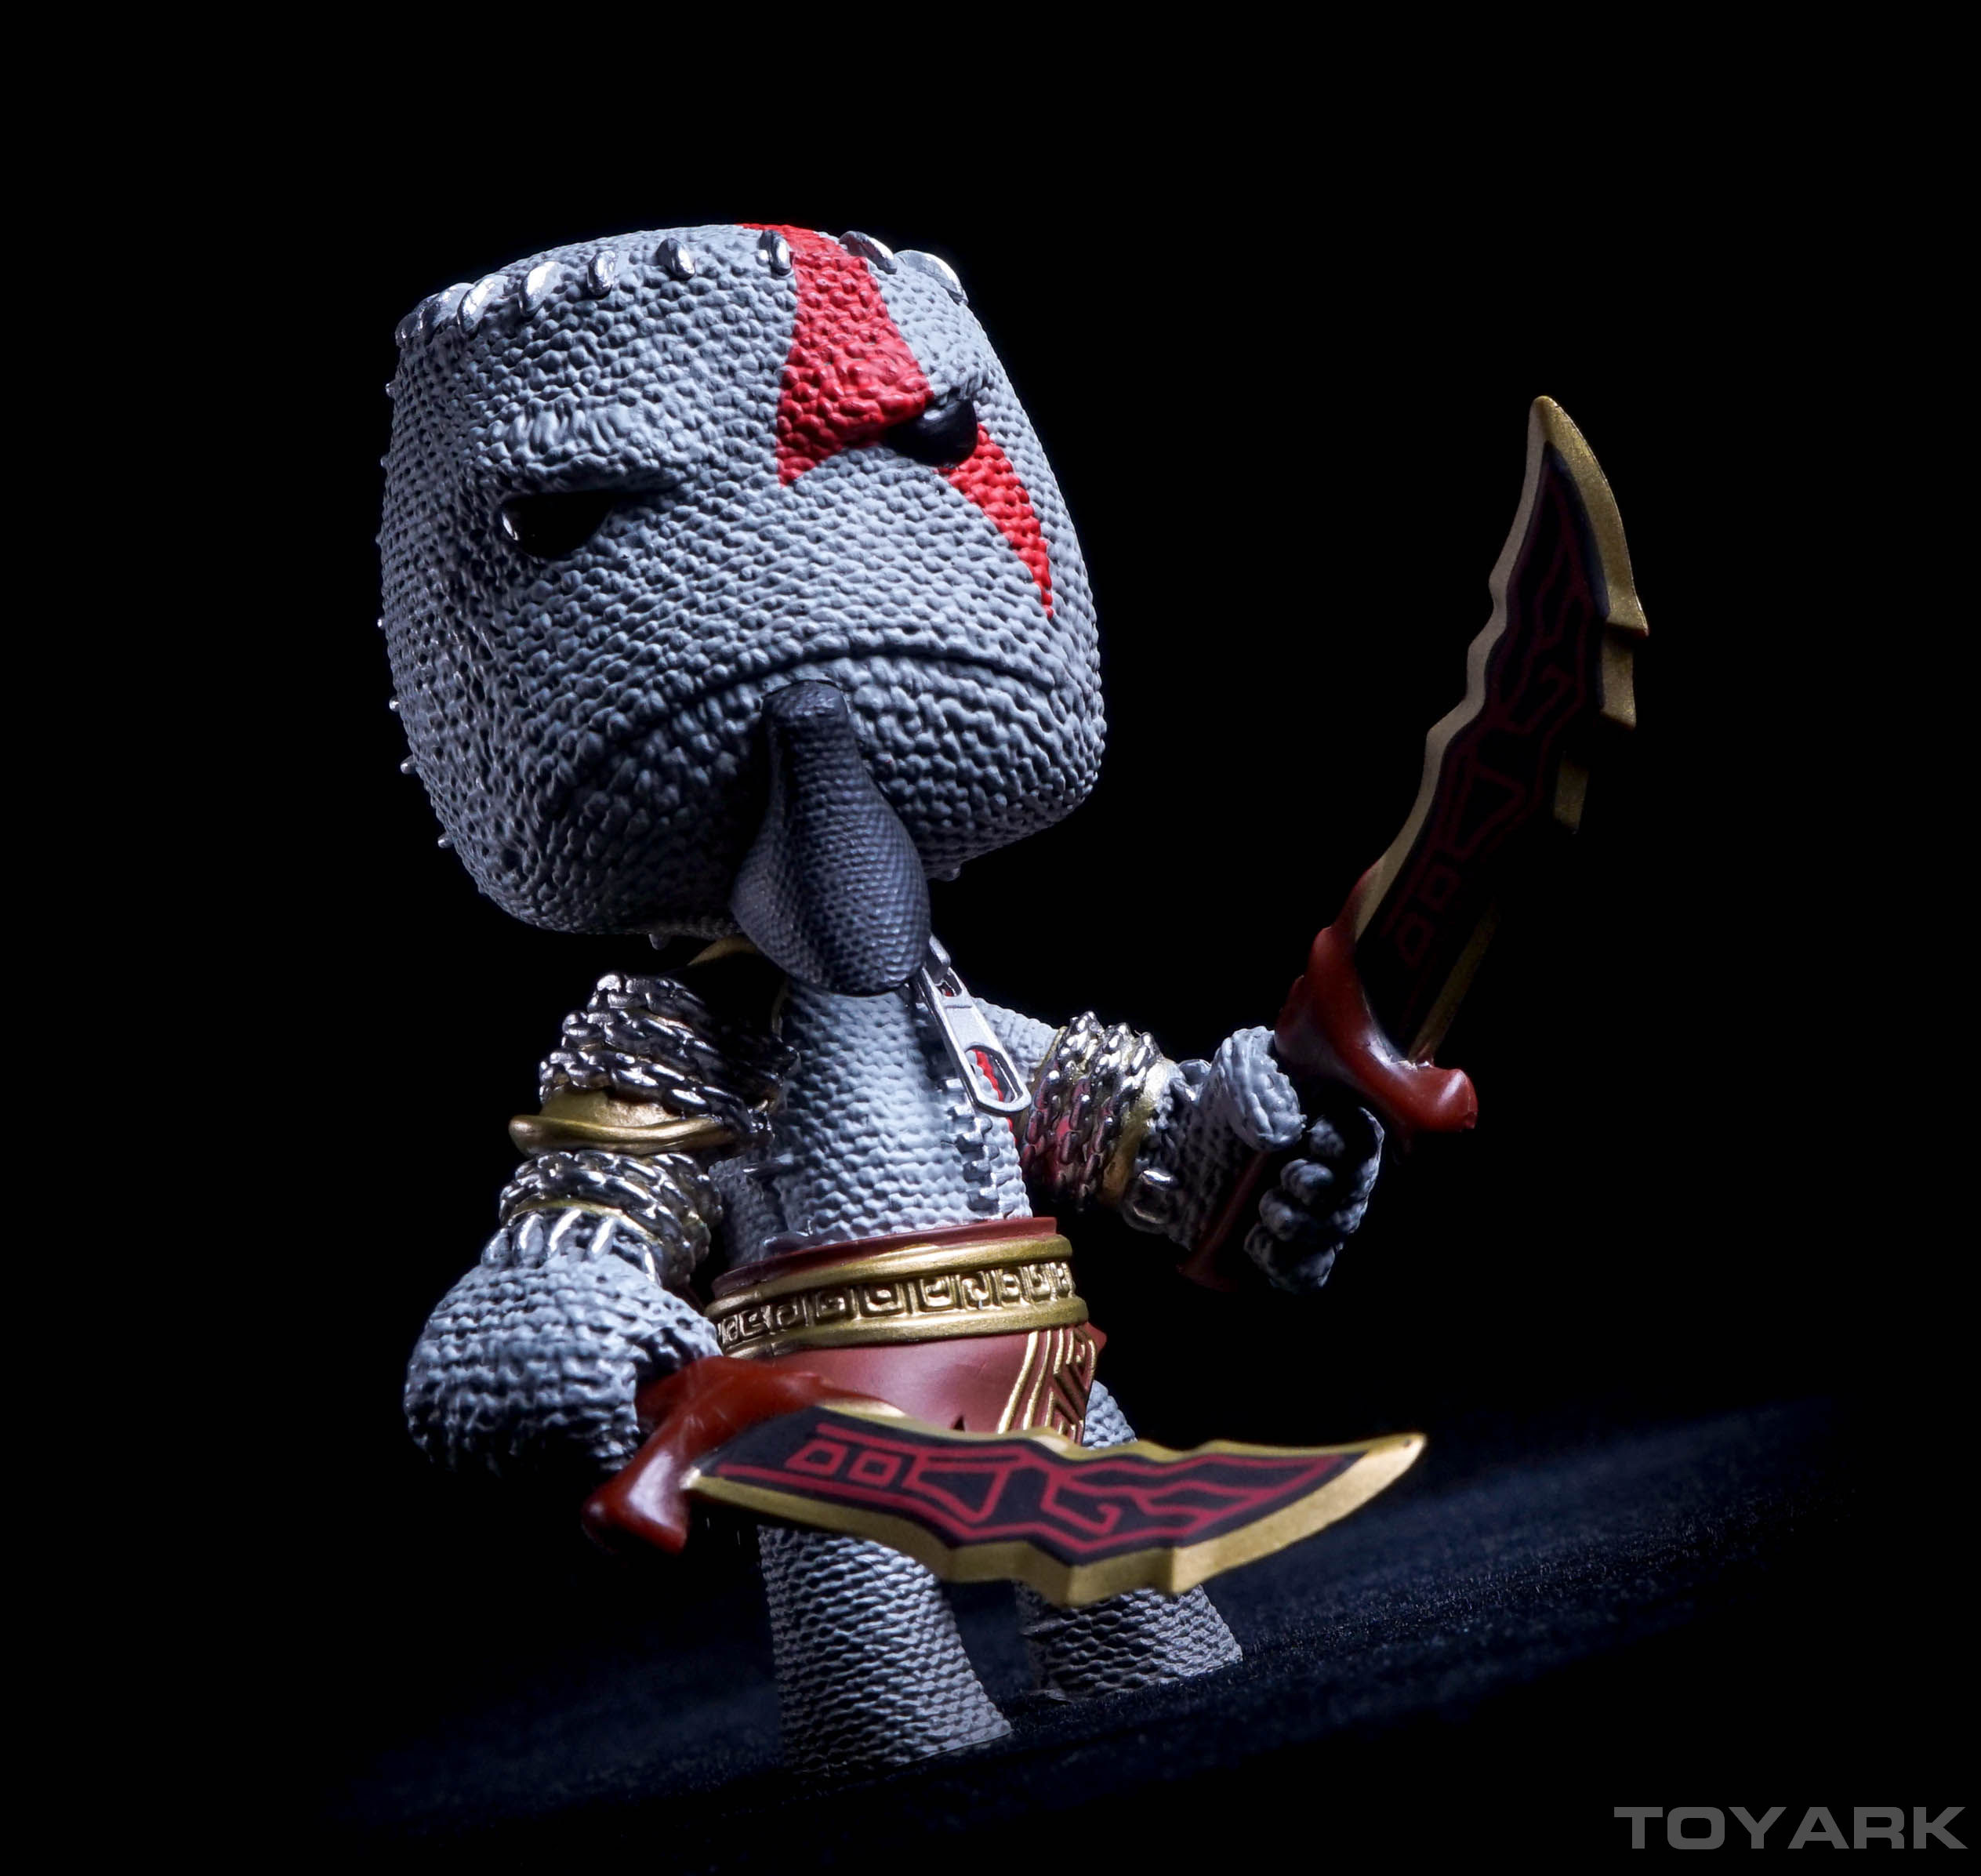 http://news.toyark.com/wp-content/uploads/sites/4/2015/11/LittleBigPlanet-Series-1-NECA-041.jpg